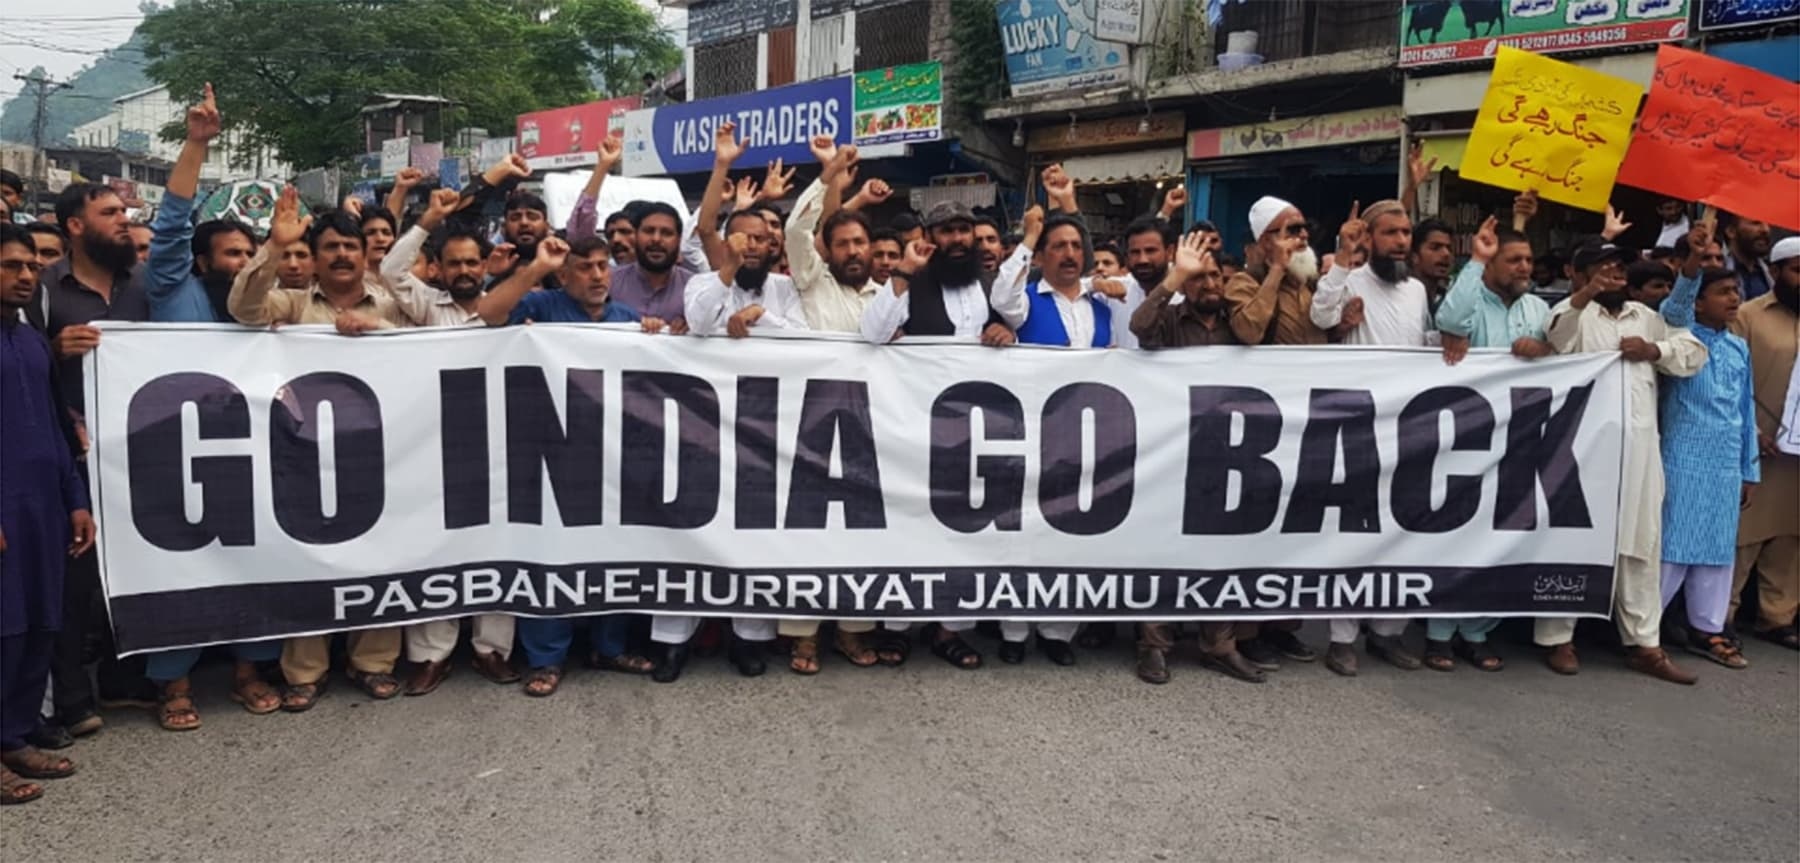 Pasban e Hurriyat, an organisation of post 1989 migrants from occupied Kashmir, staged a rally near press club to condemn India's occupation of Kashmir. — Tariq Naqash